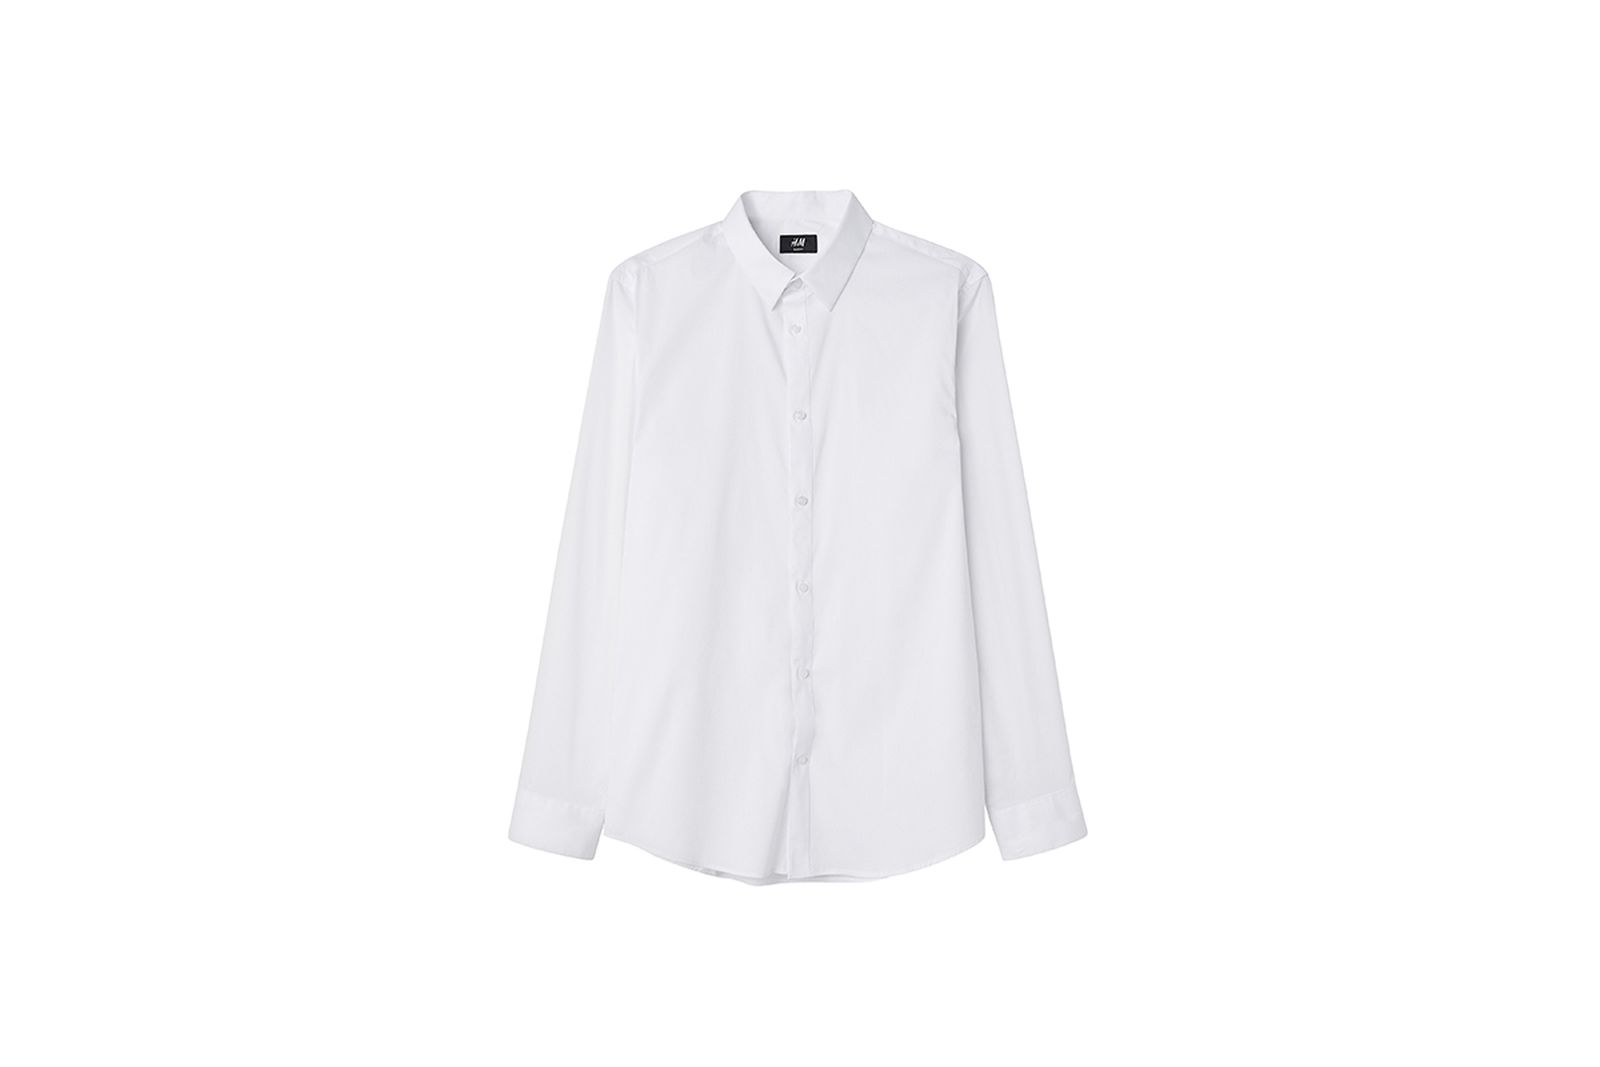 HM Slim Fit Shirt Gift Guide h&m holiday